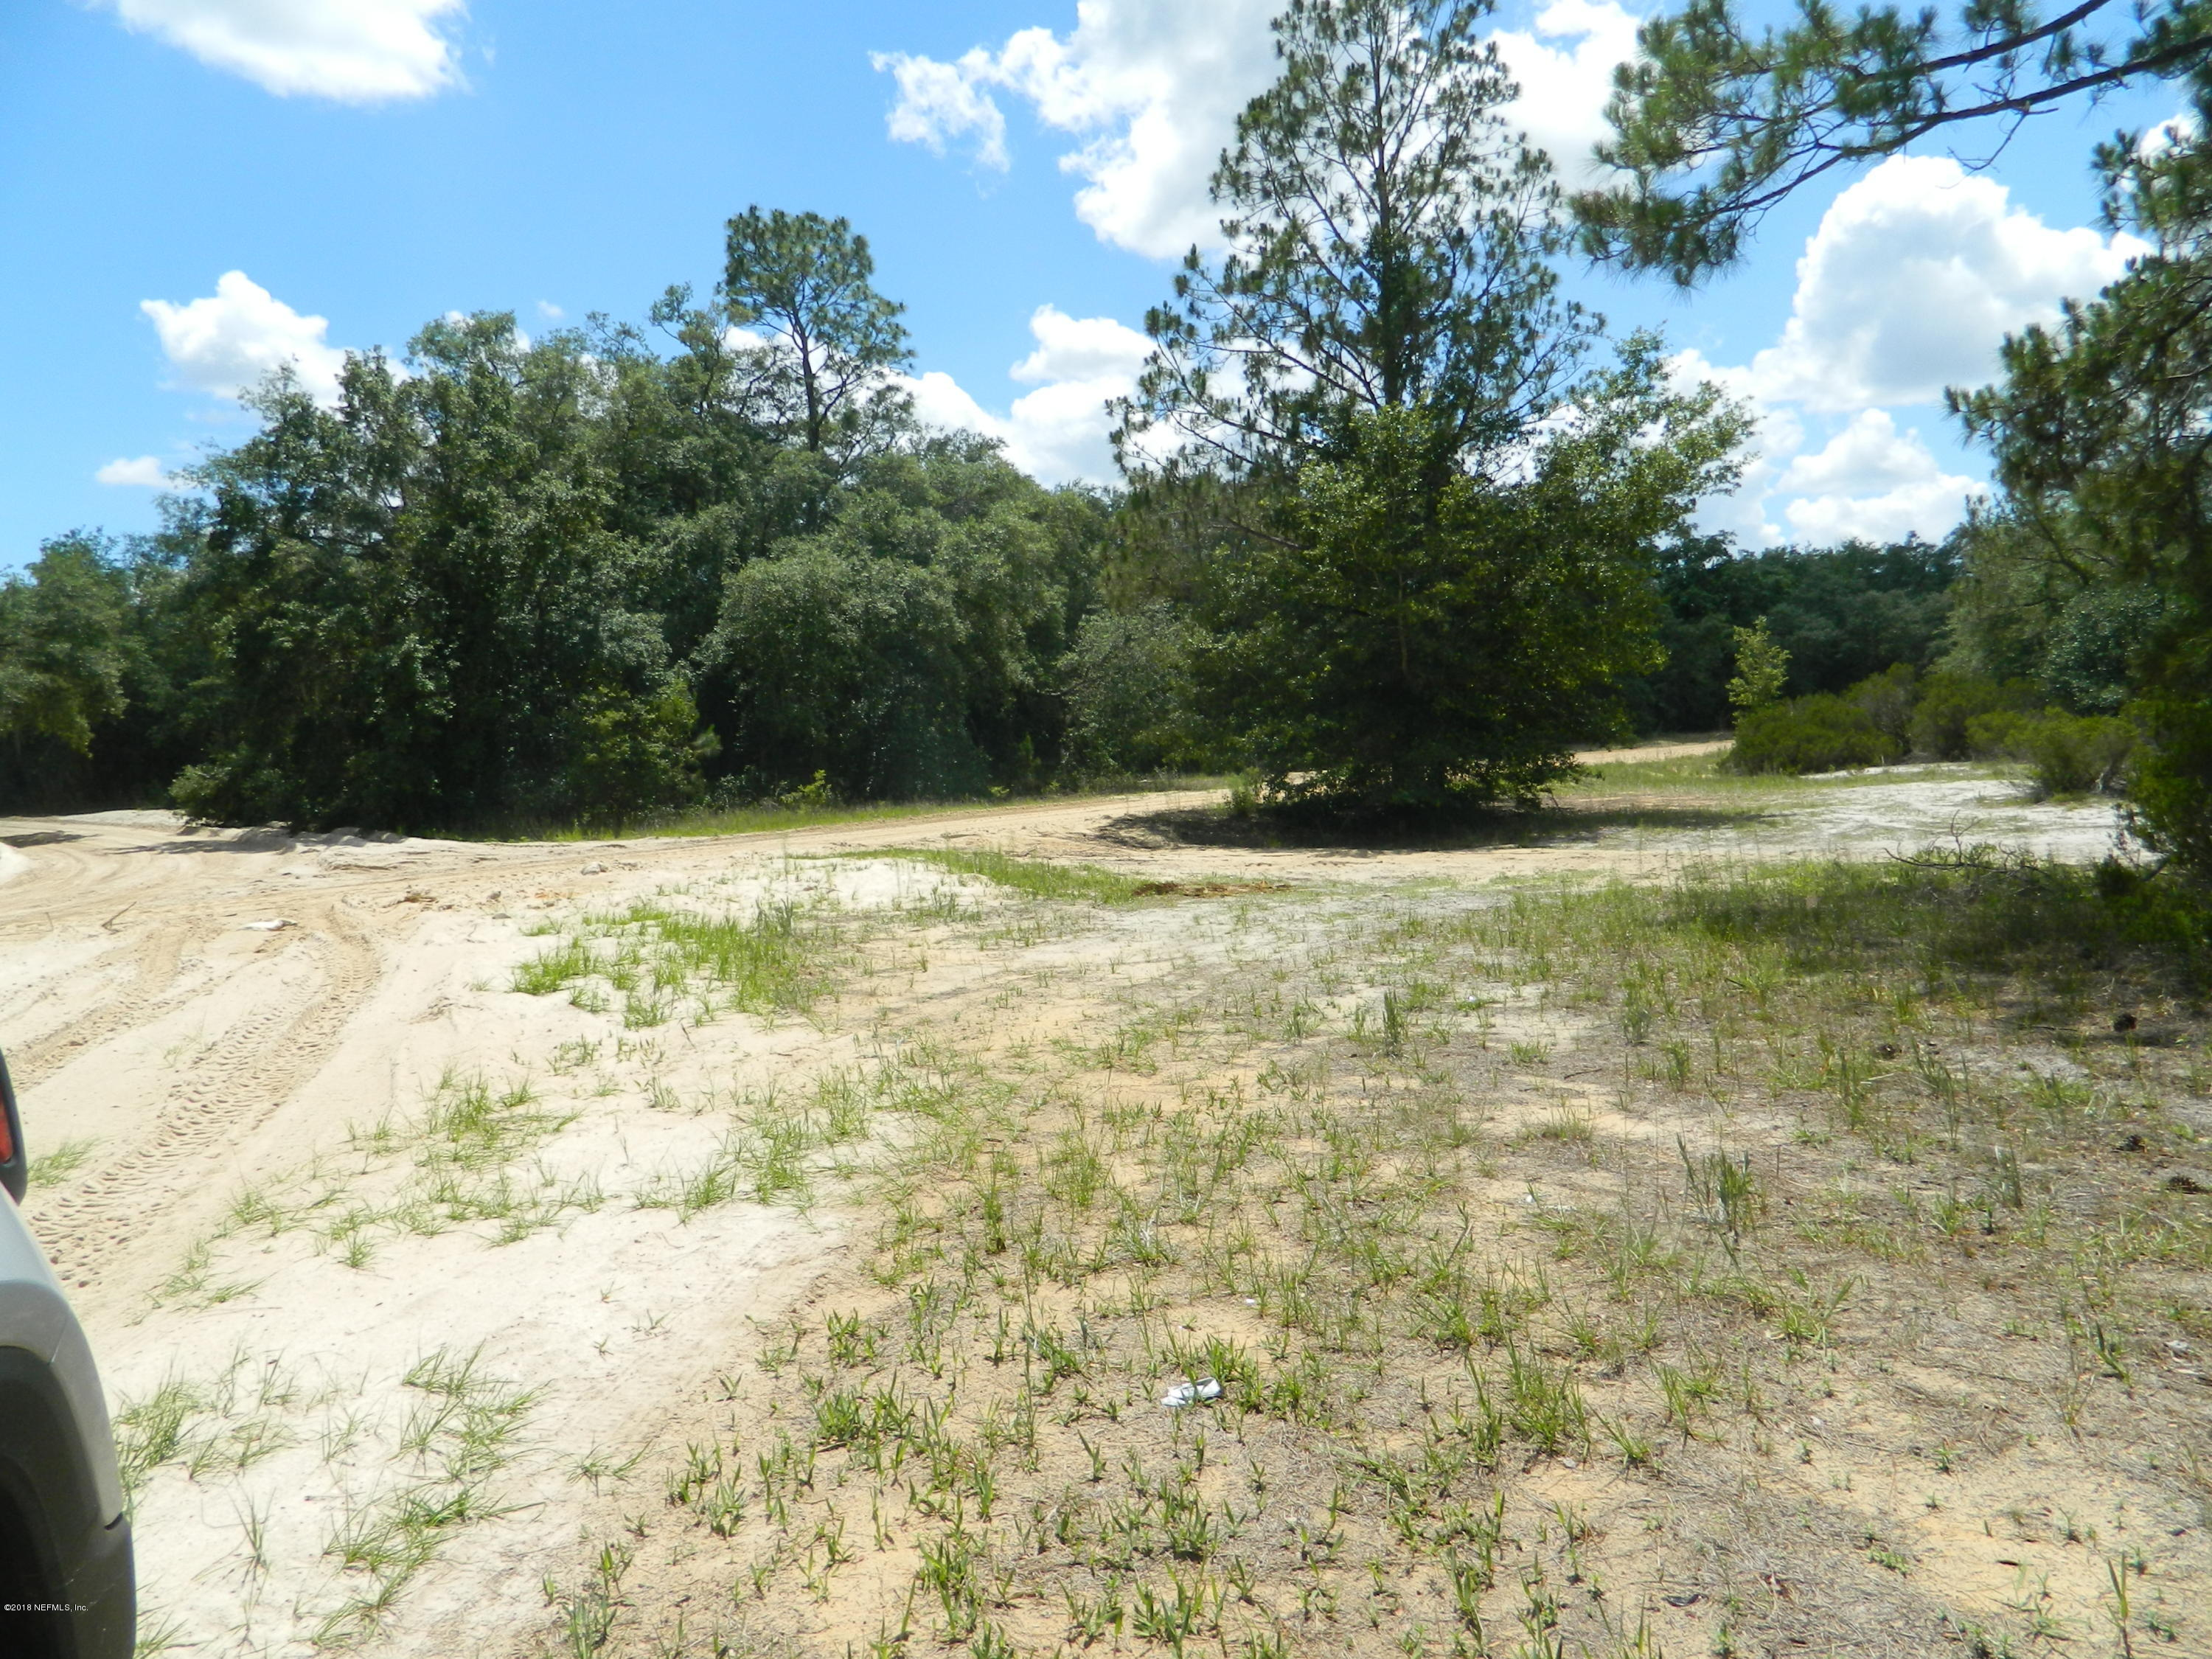 0 LAKE LUCY CRESCENT, INTERLACHEN, FLORIDA 32148, ,Vacant land,For sale,LAKE LUCY CRESCENT,938222